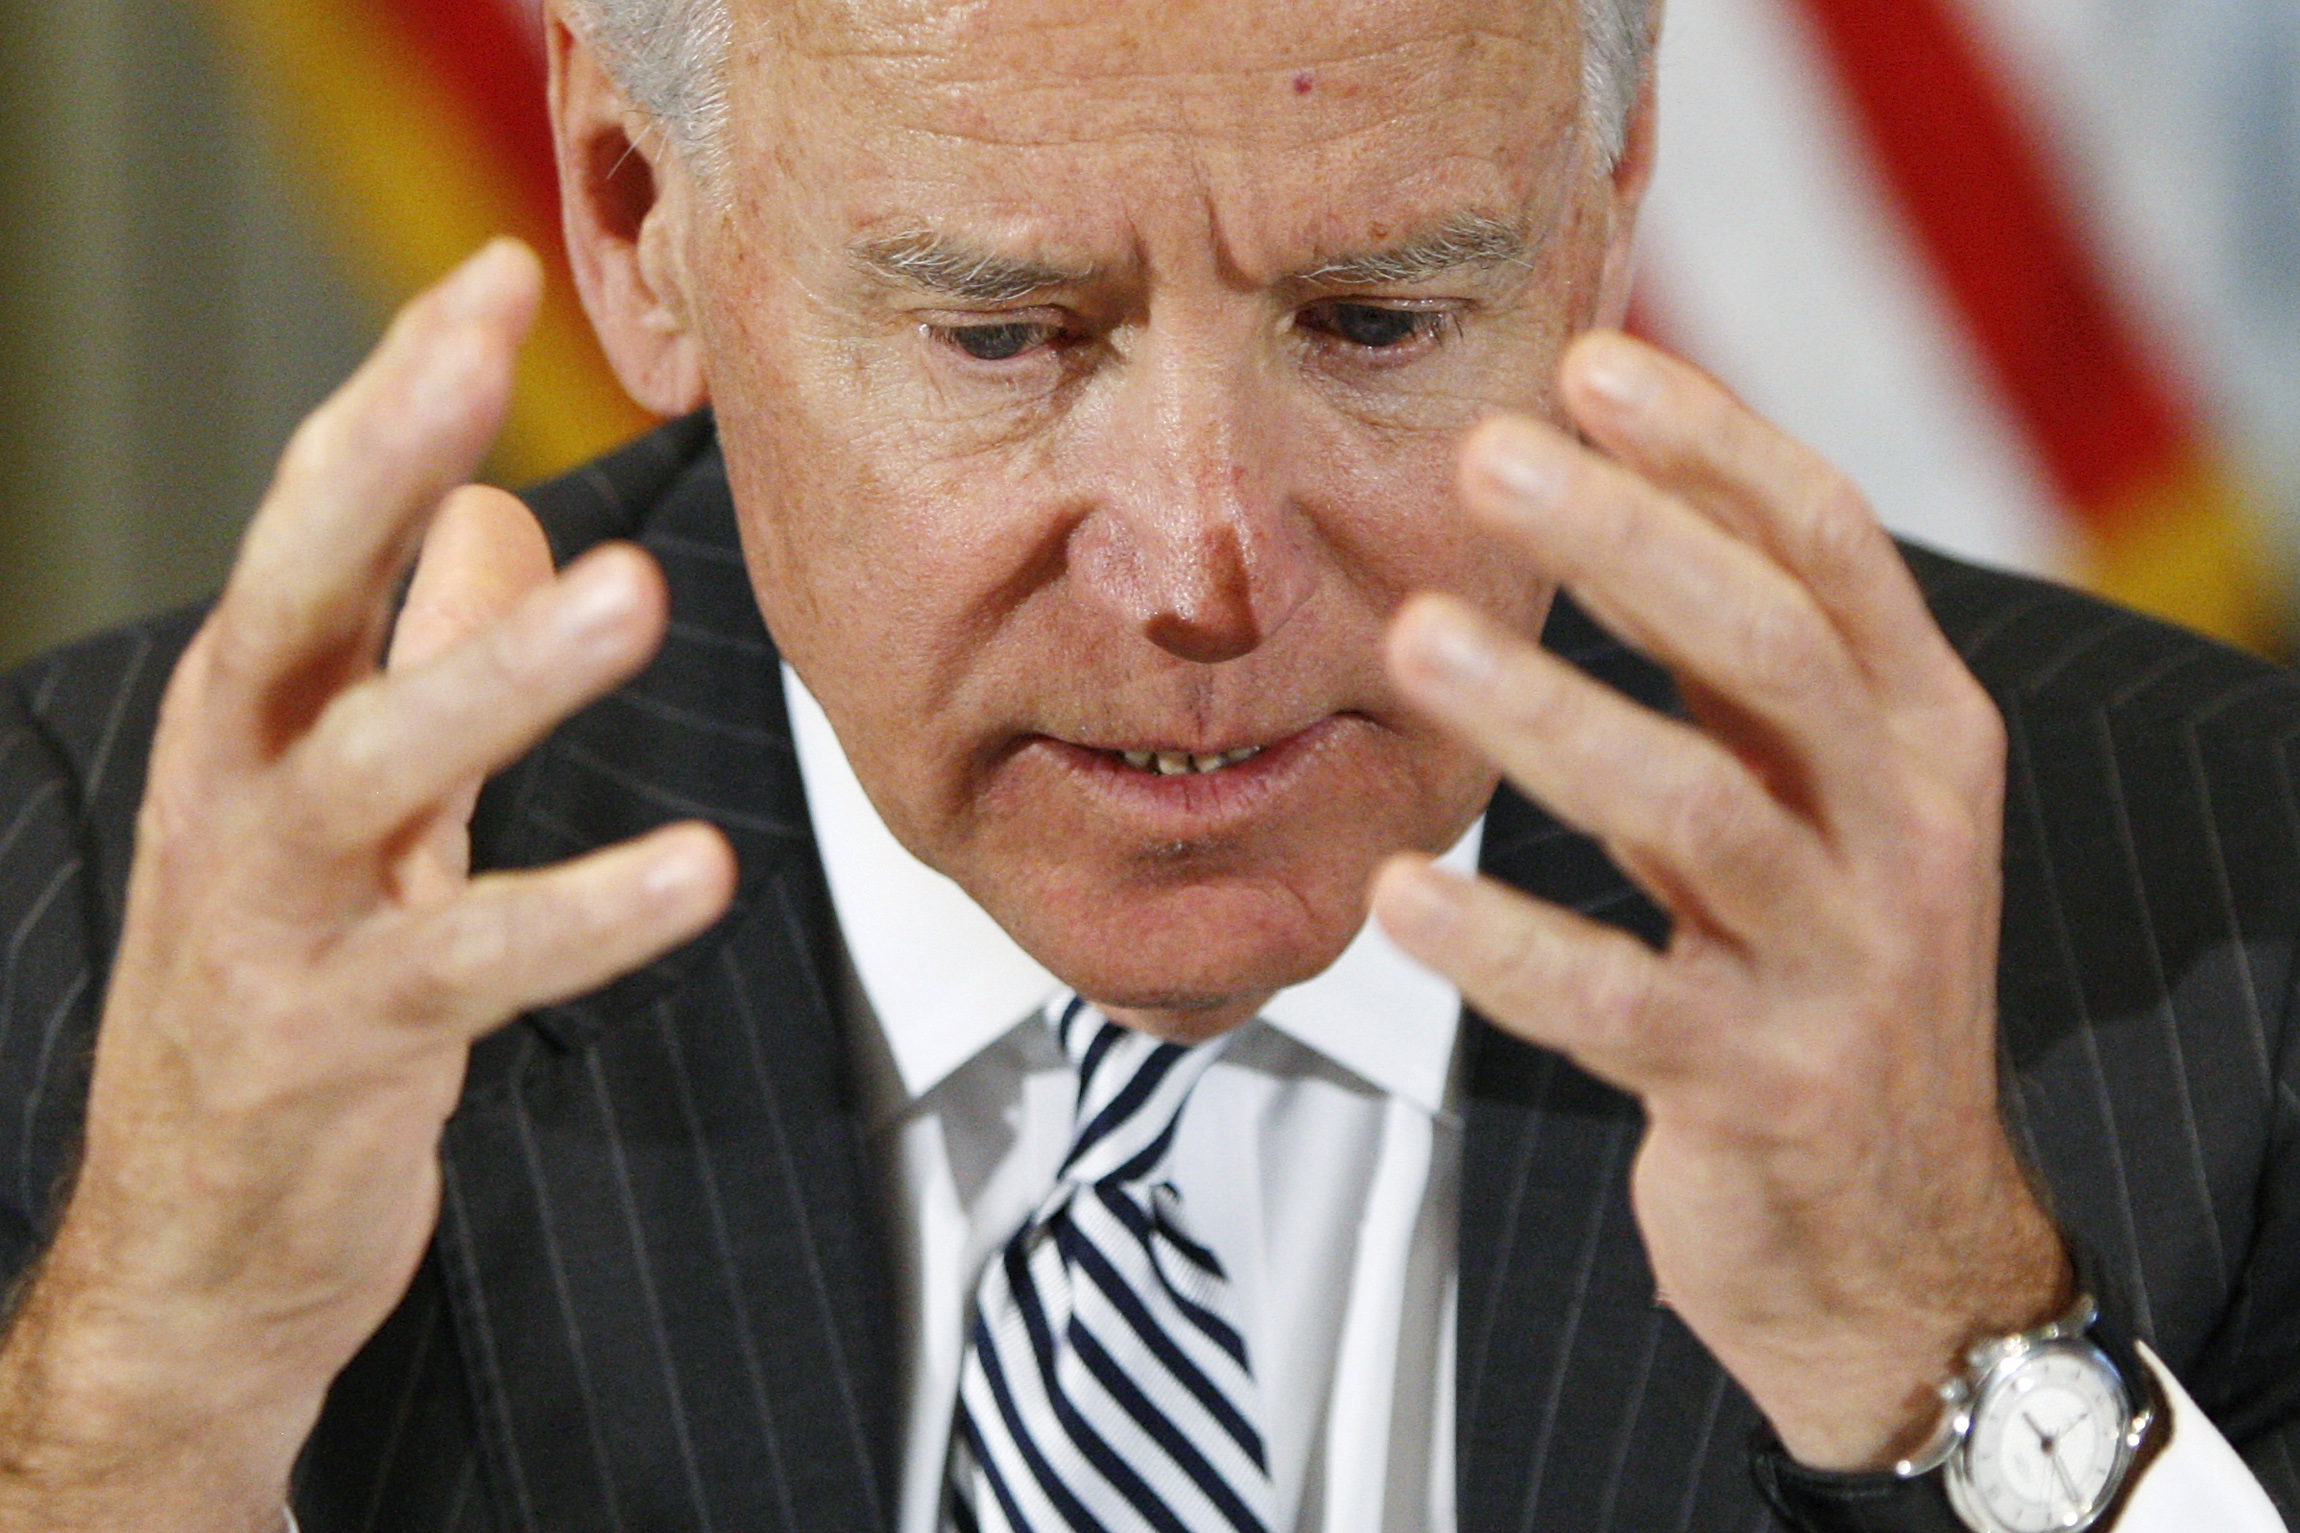 Biden Tackles US Gun Violence After Newtown Massacre